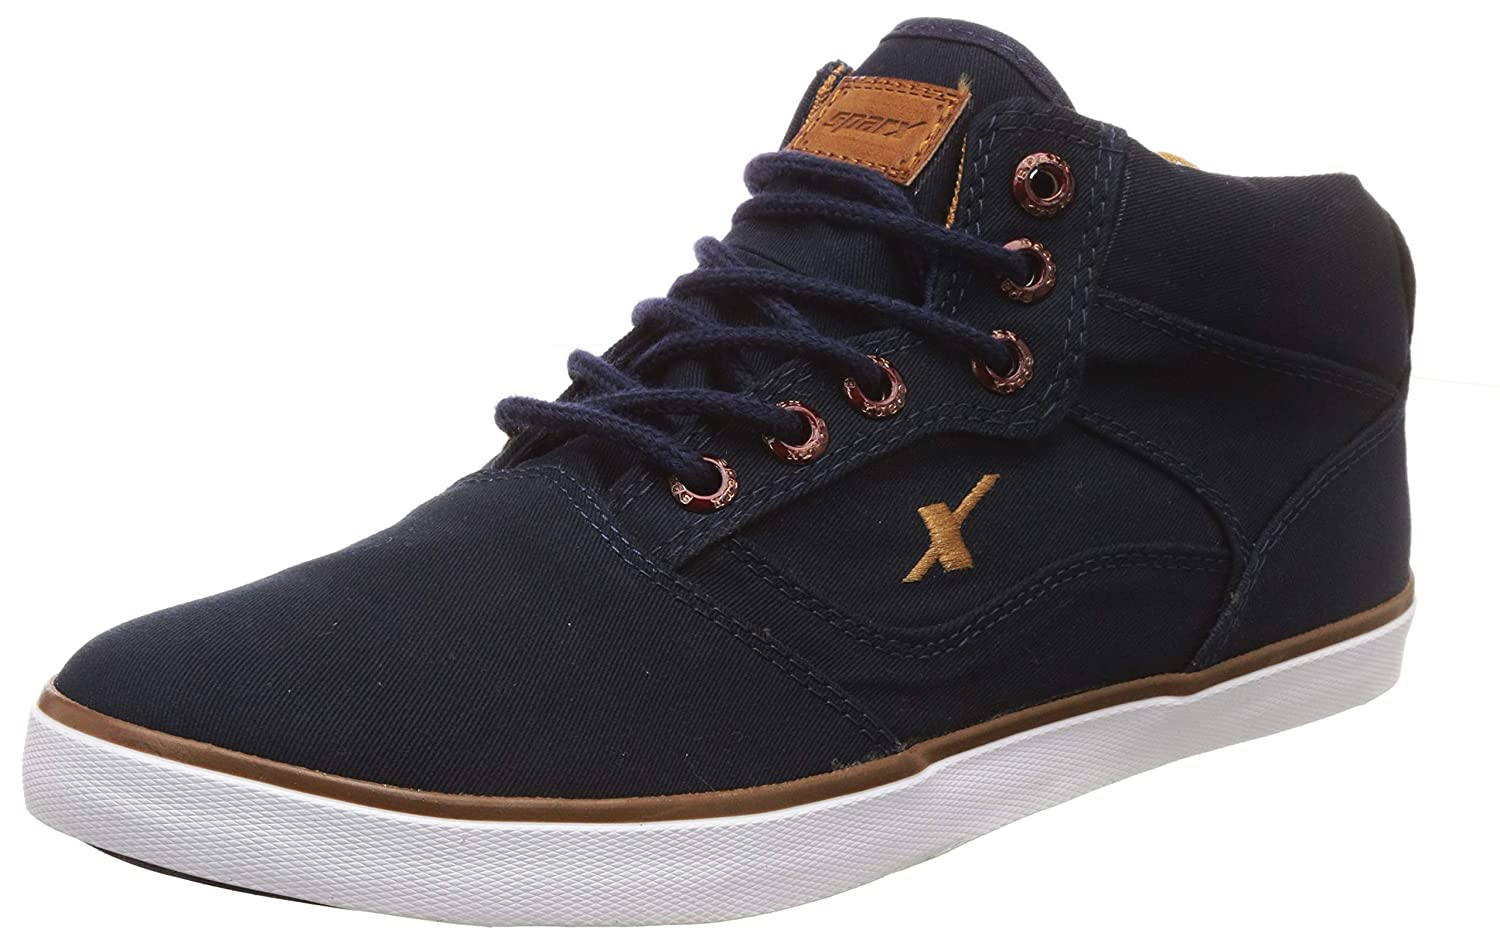 Sparx Men's Navy Blue and Tan Sneakers